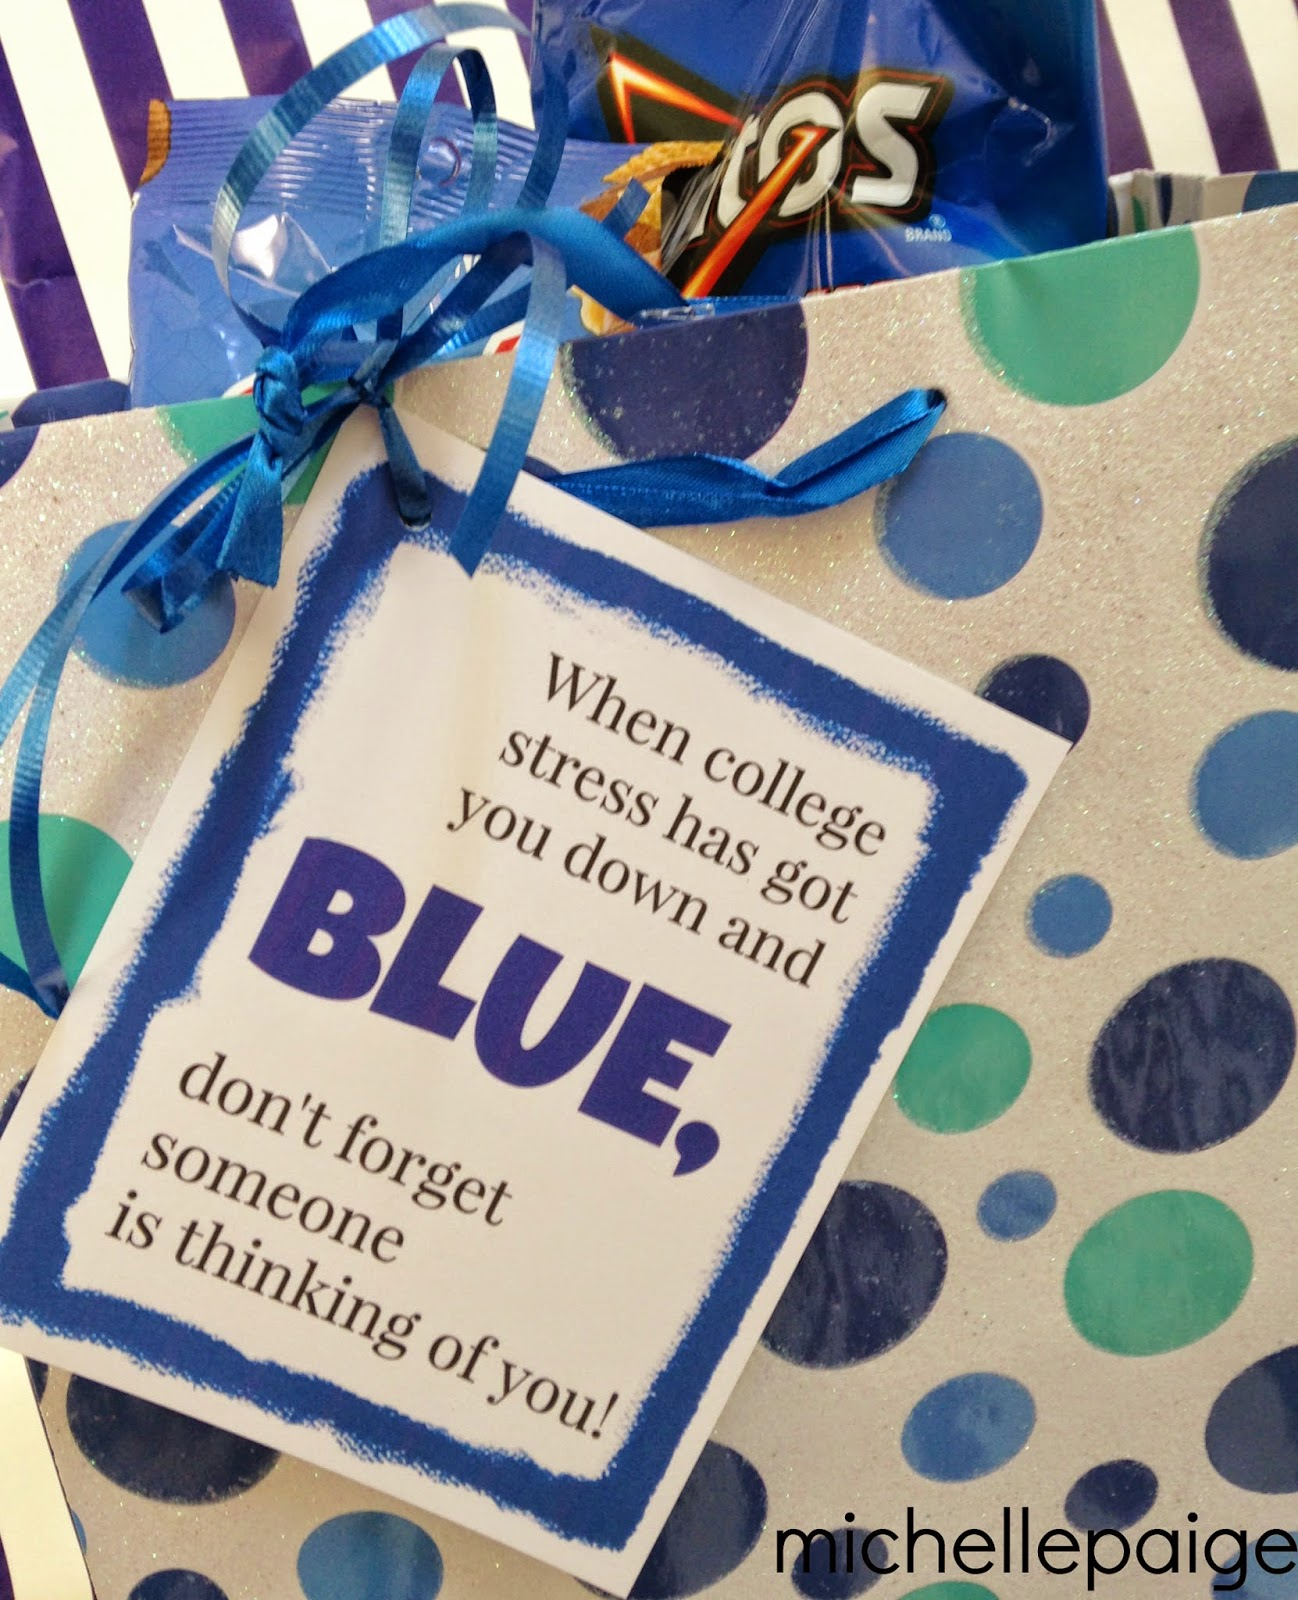 Michelle Paige Blogs Got The Blues Gift For College Students With